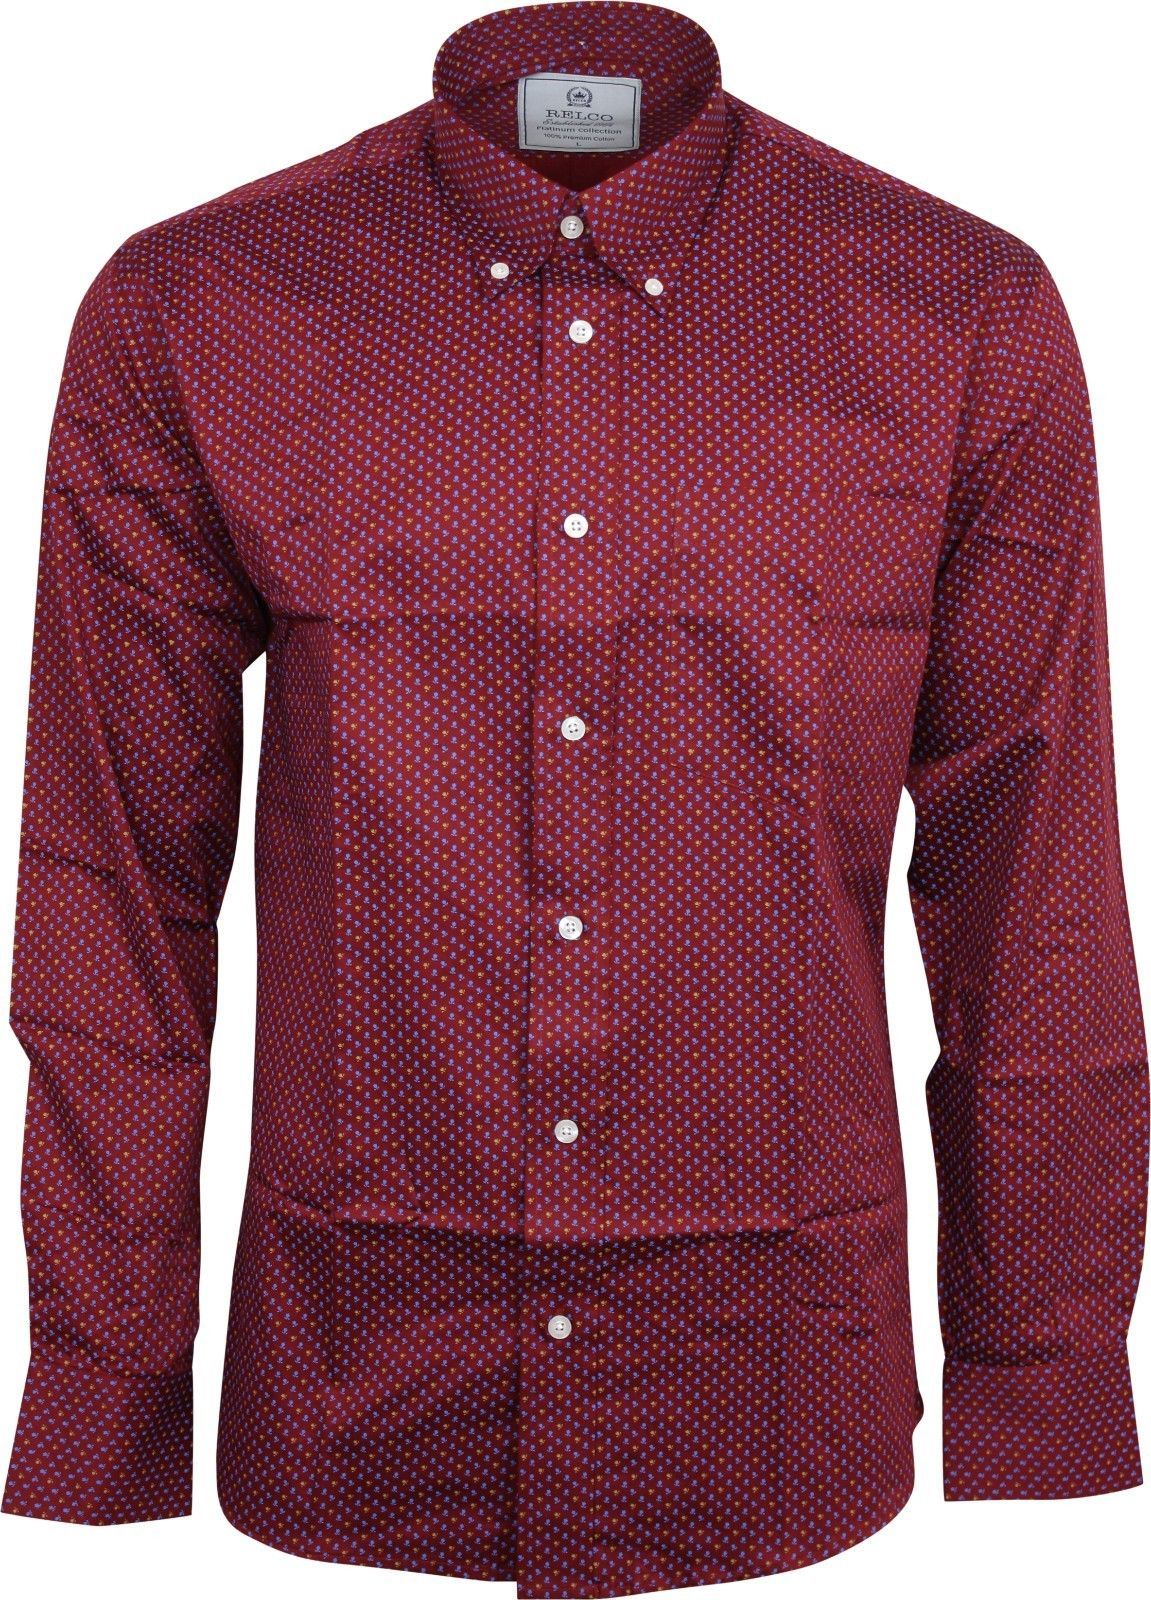 a30c0cf2f49 Relco Mens Platinum Burgundy Floral Long Sleeved Button Down Shirt Mod Skin  60s